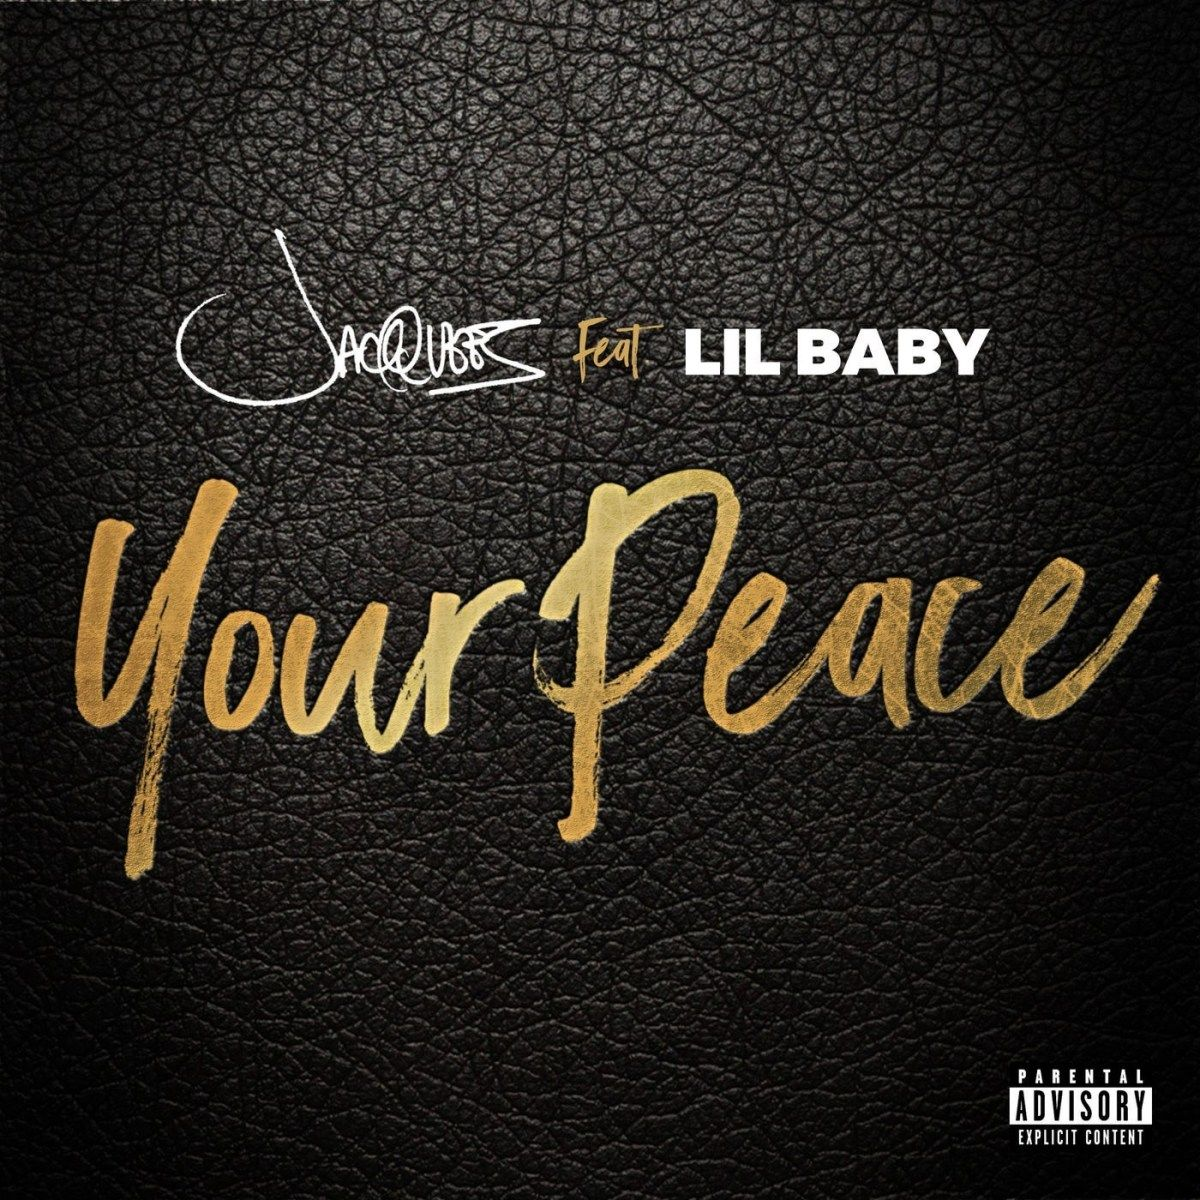 Jacquees Your Peace Ft Lil Baby Mp3 Download Lil Baby Songs Hip Hop Songs